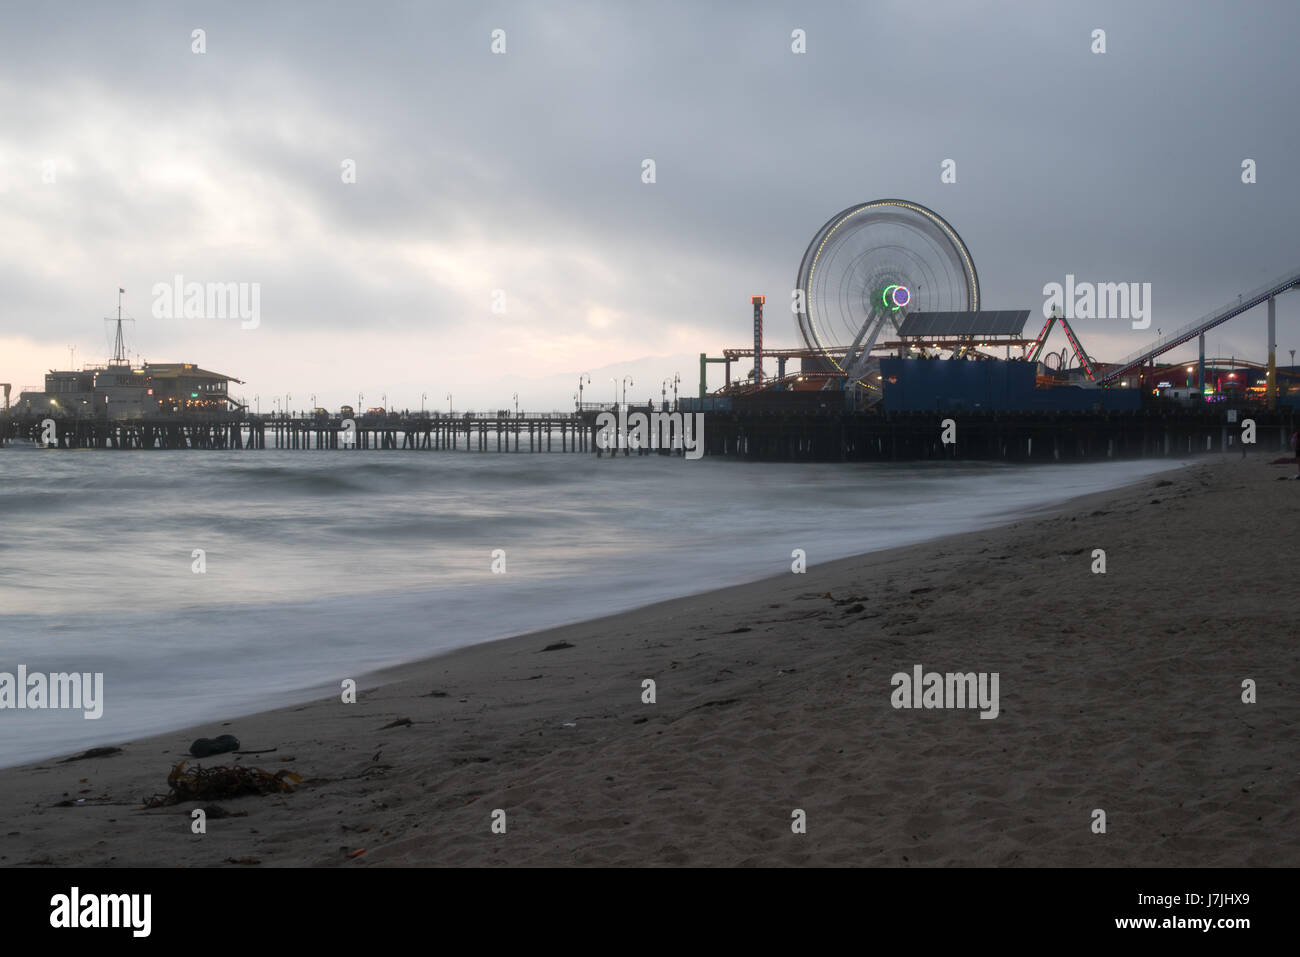 Pch Stock Photos & Pch Stock Images - Page 3 - Alamy